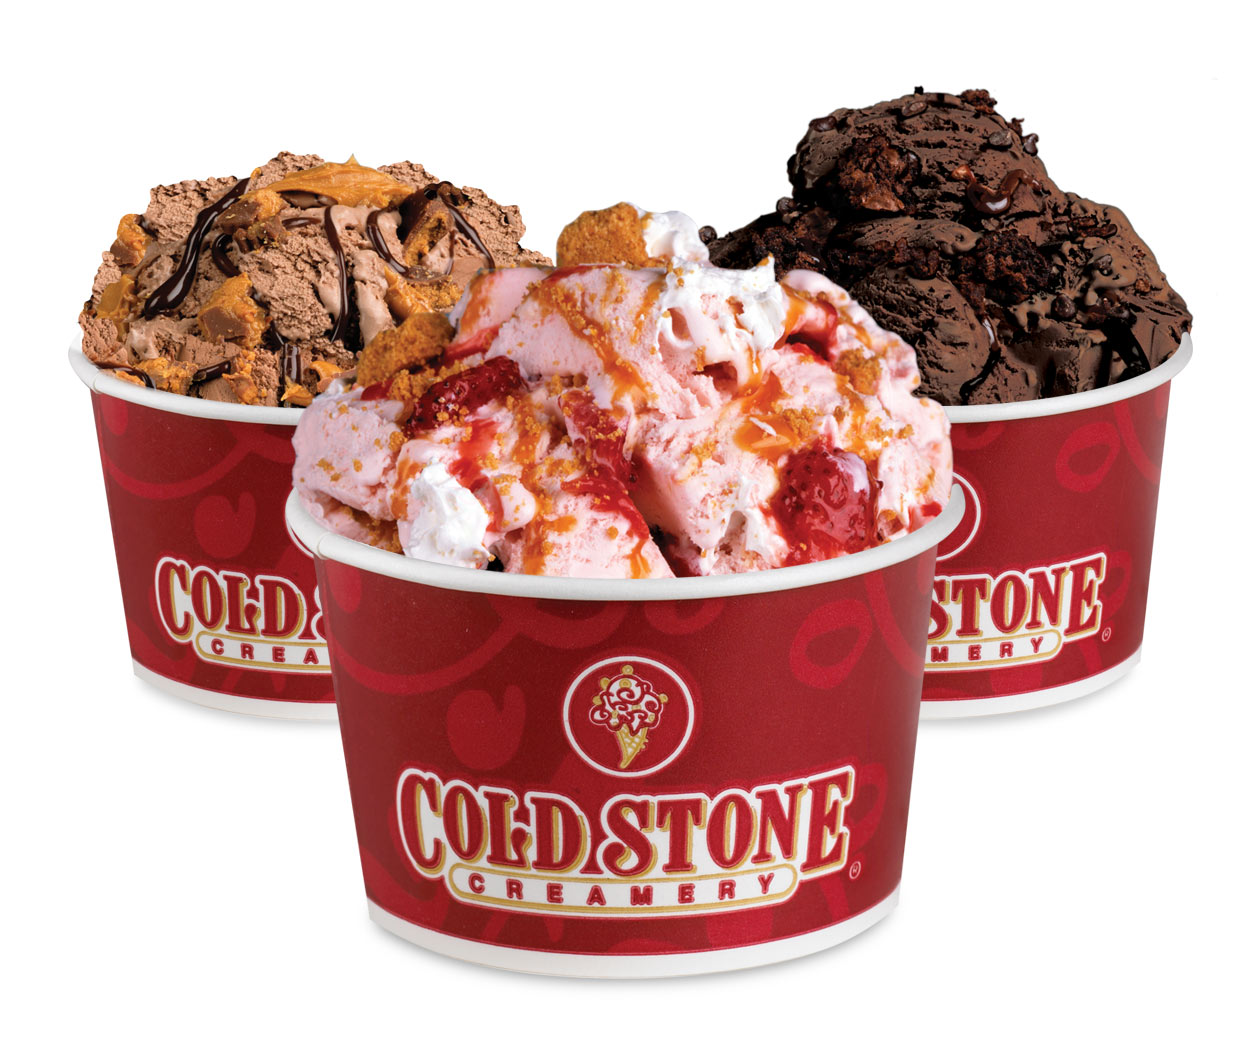 Ice Cream only $2.40 at Cold Stone Creamery in Bel Air!